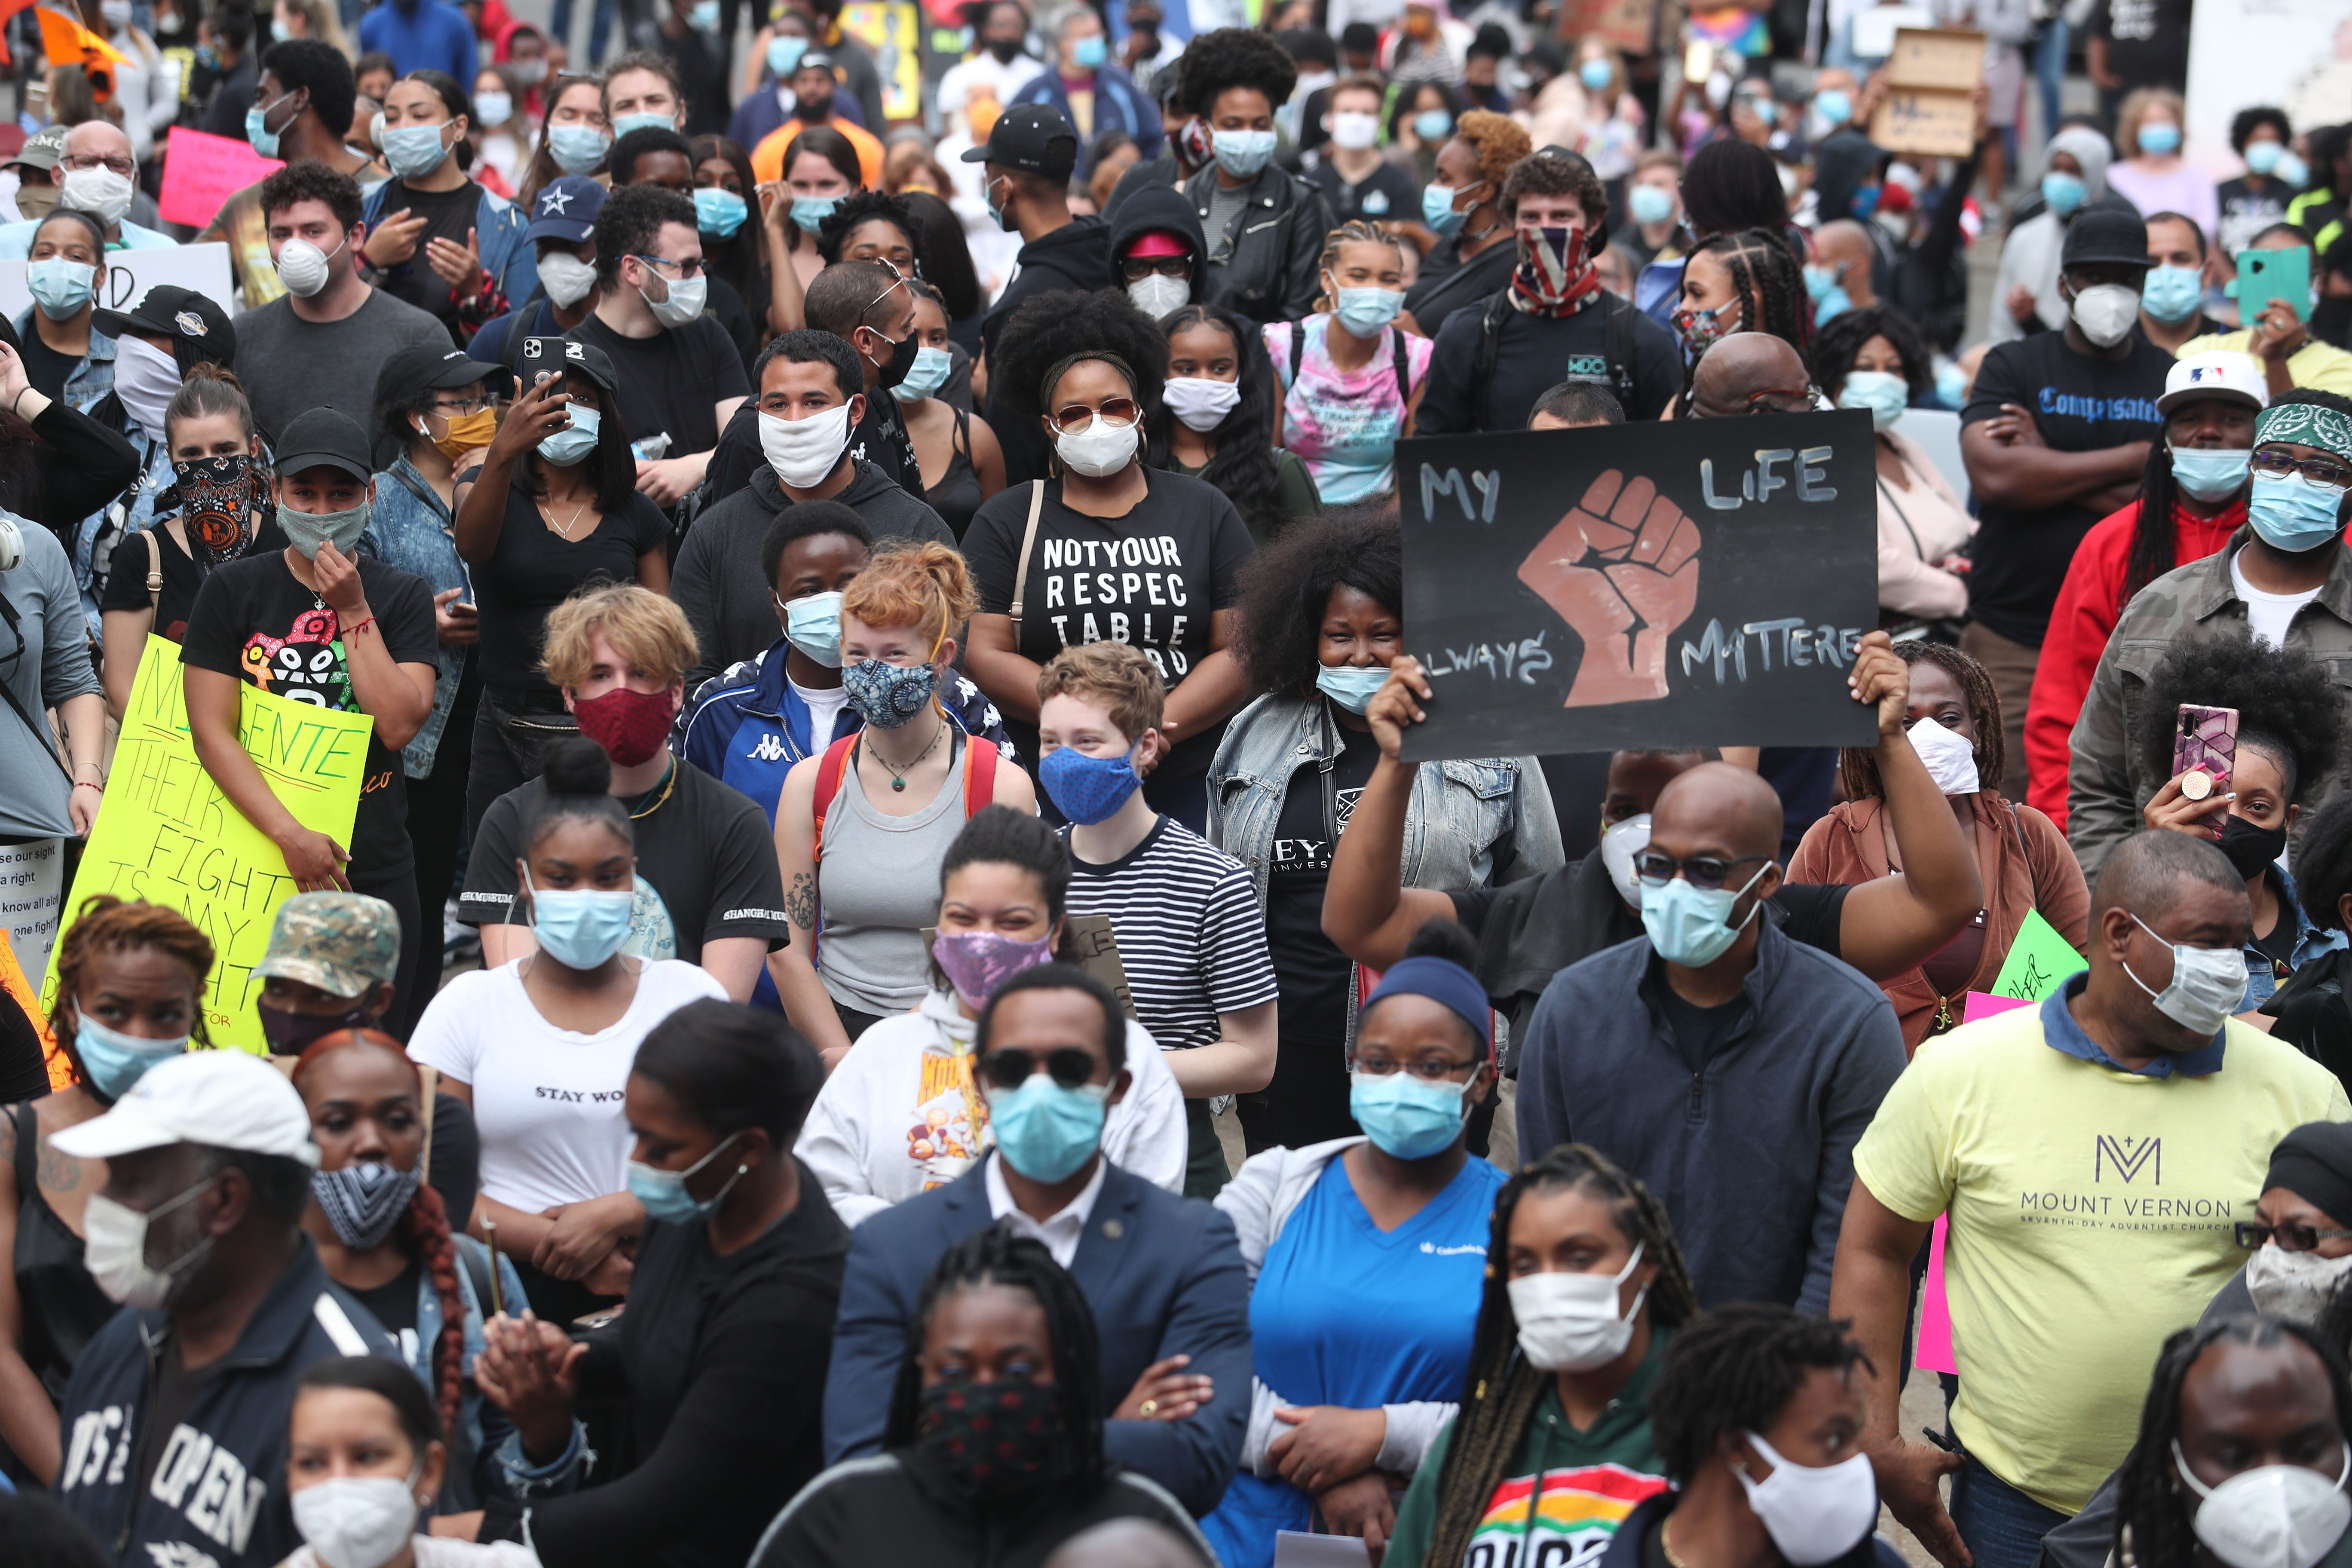 Hundreds of people gathered outside Mount Vernon City Hall during a peaceful We Can't Breath Unity Rally on June 2, 2020.